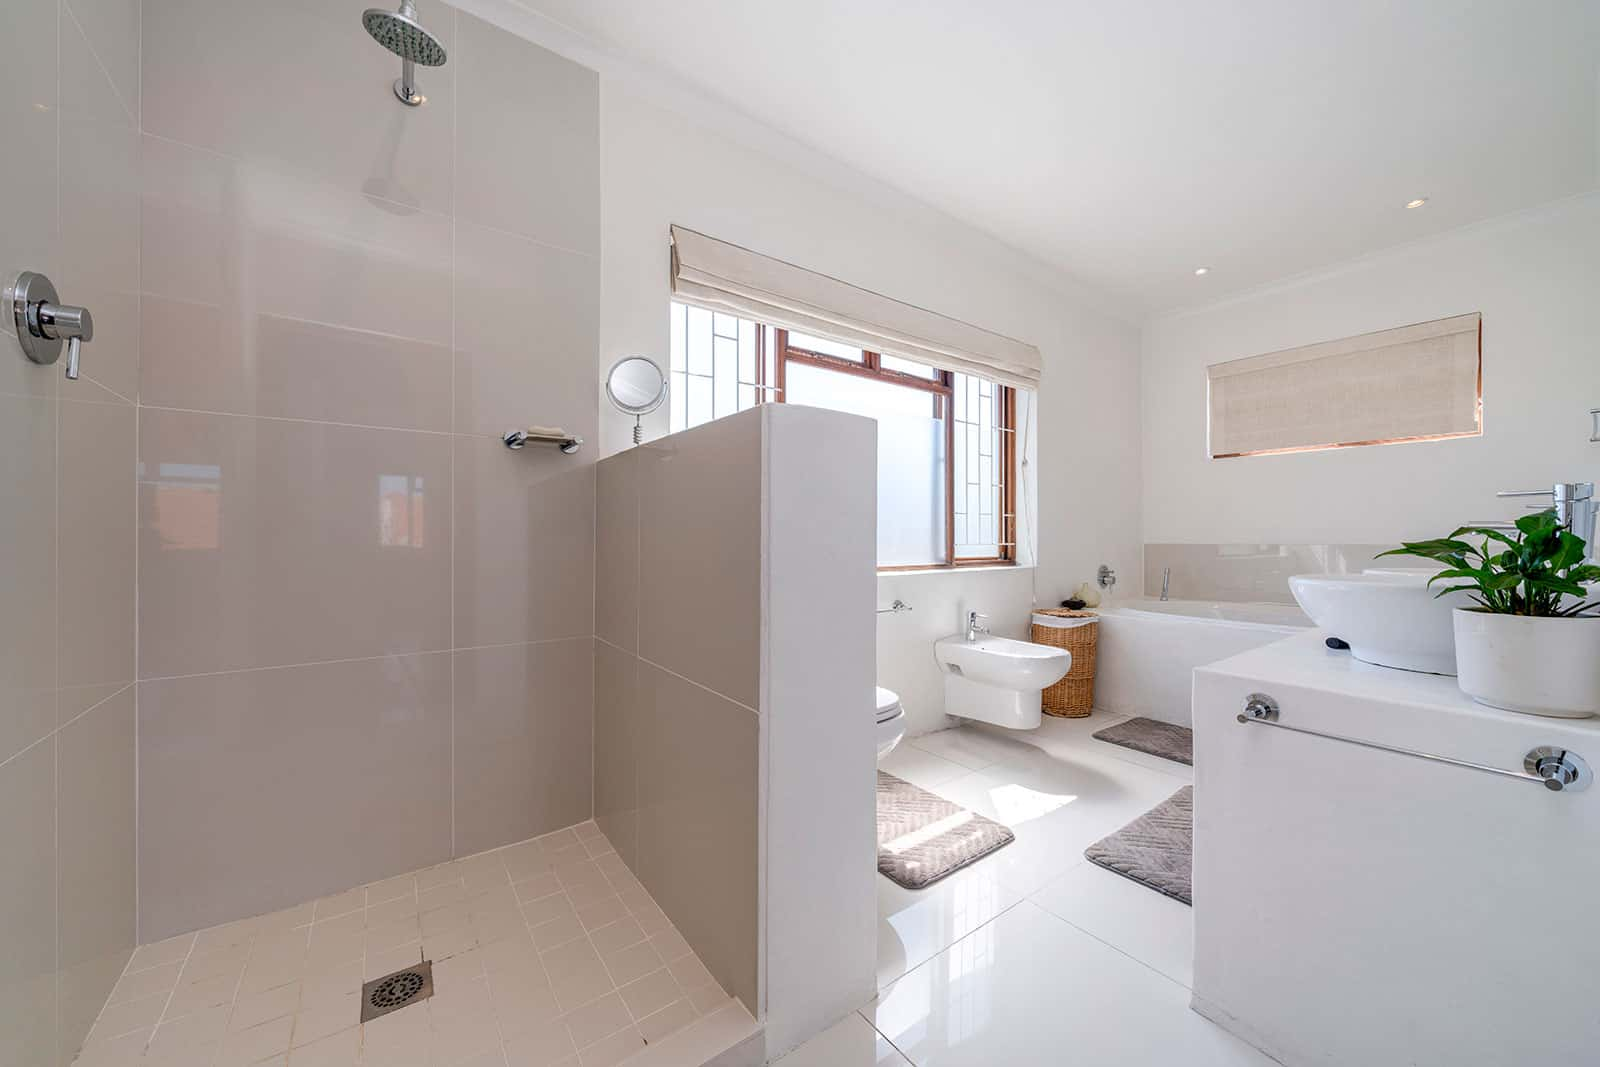 Luxury serviced student accommodation in Cape Town